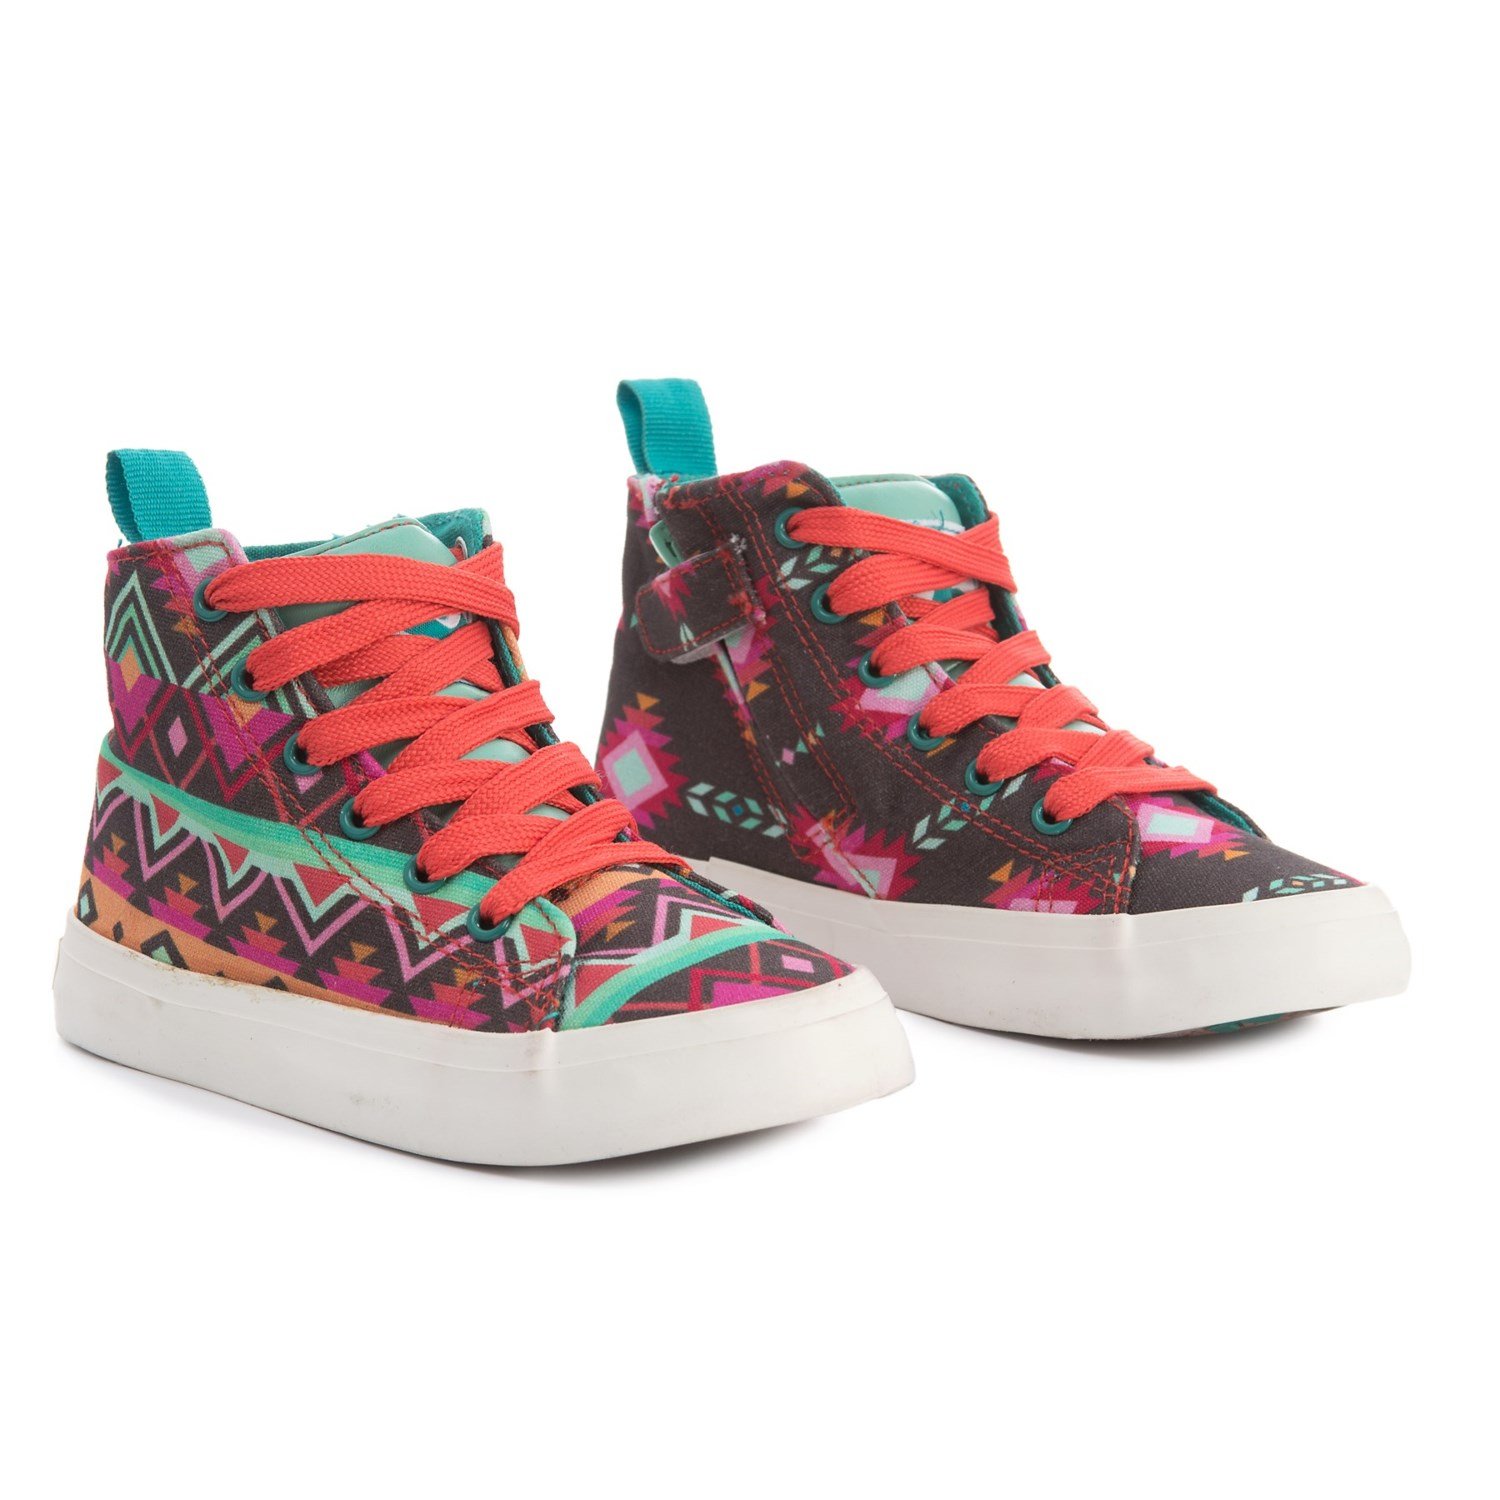 7b24df462461 CHOOZE Spark Sneakers (For Girls)